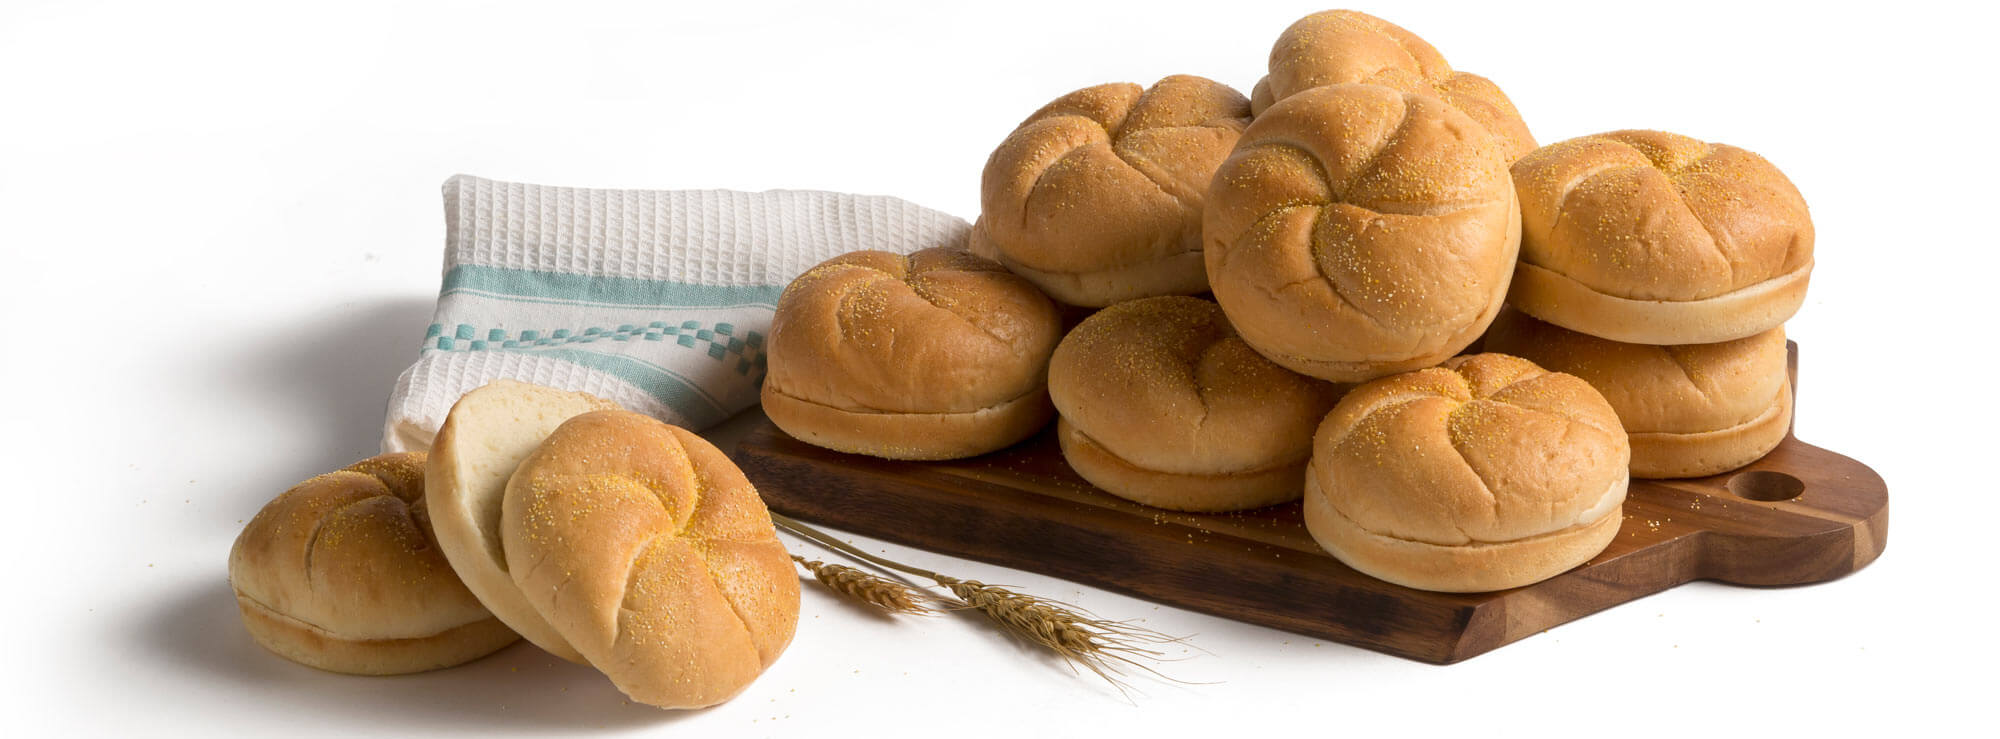 Gemini Bakery Products - Hamburger Buns